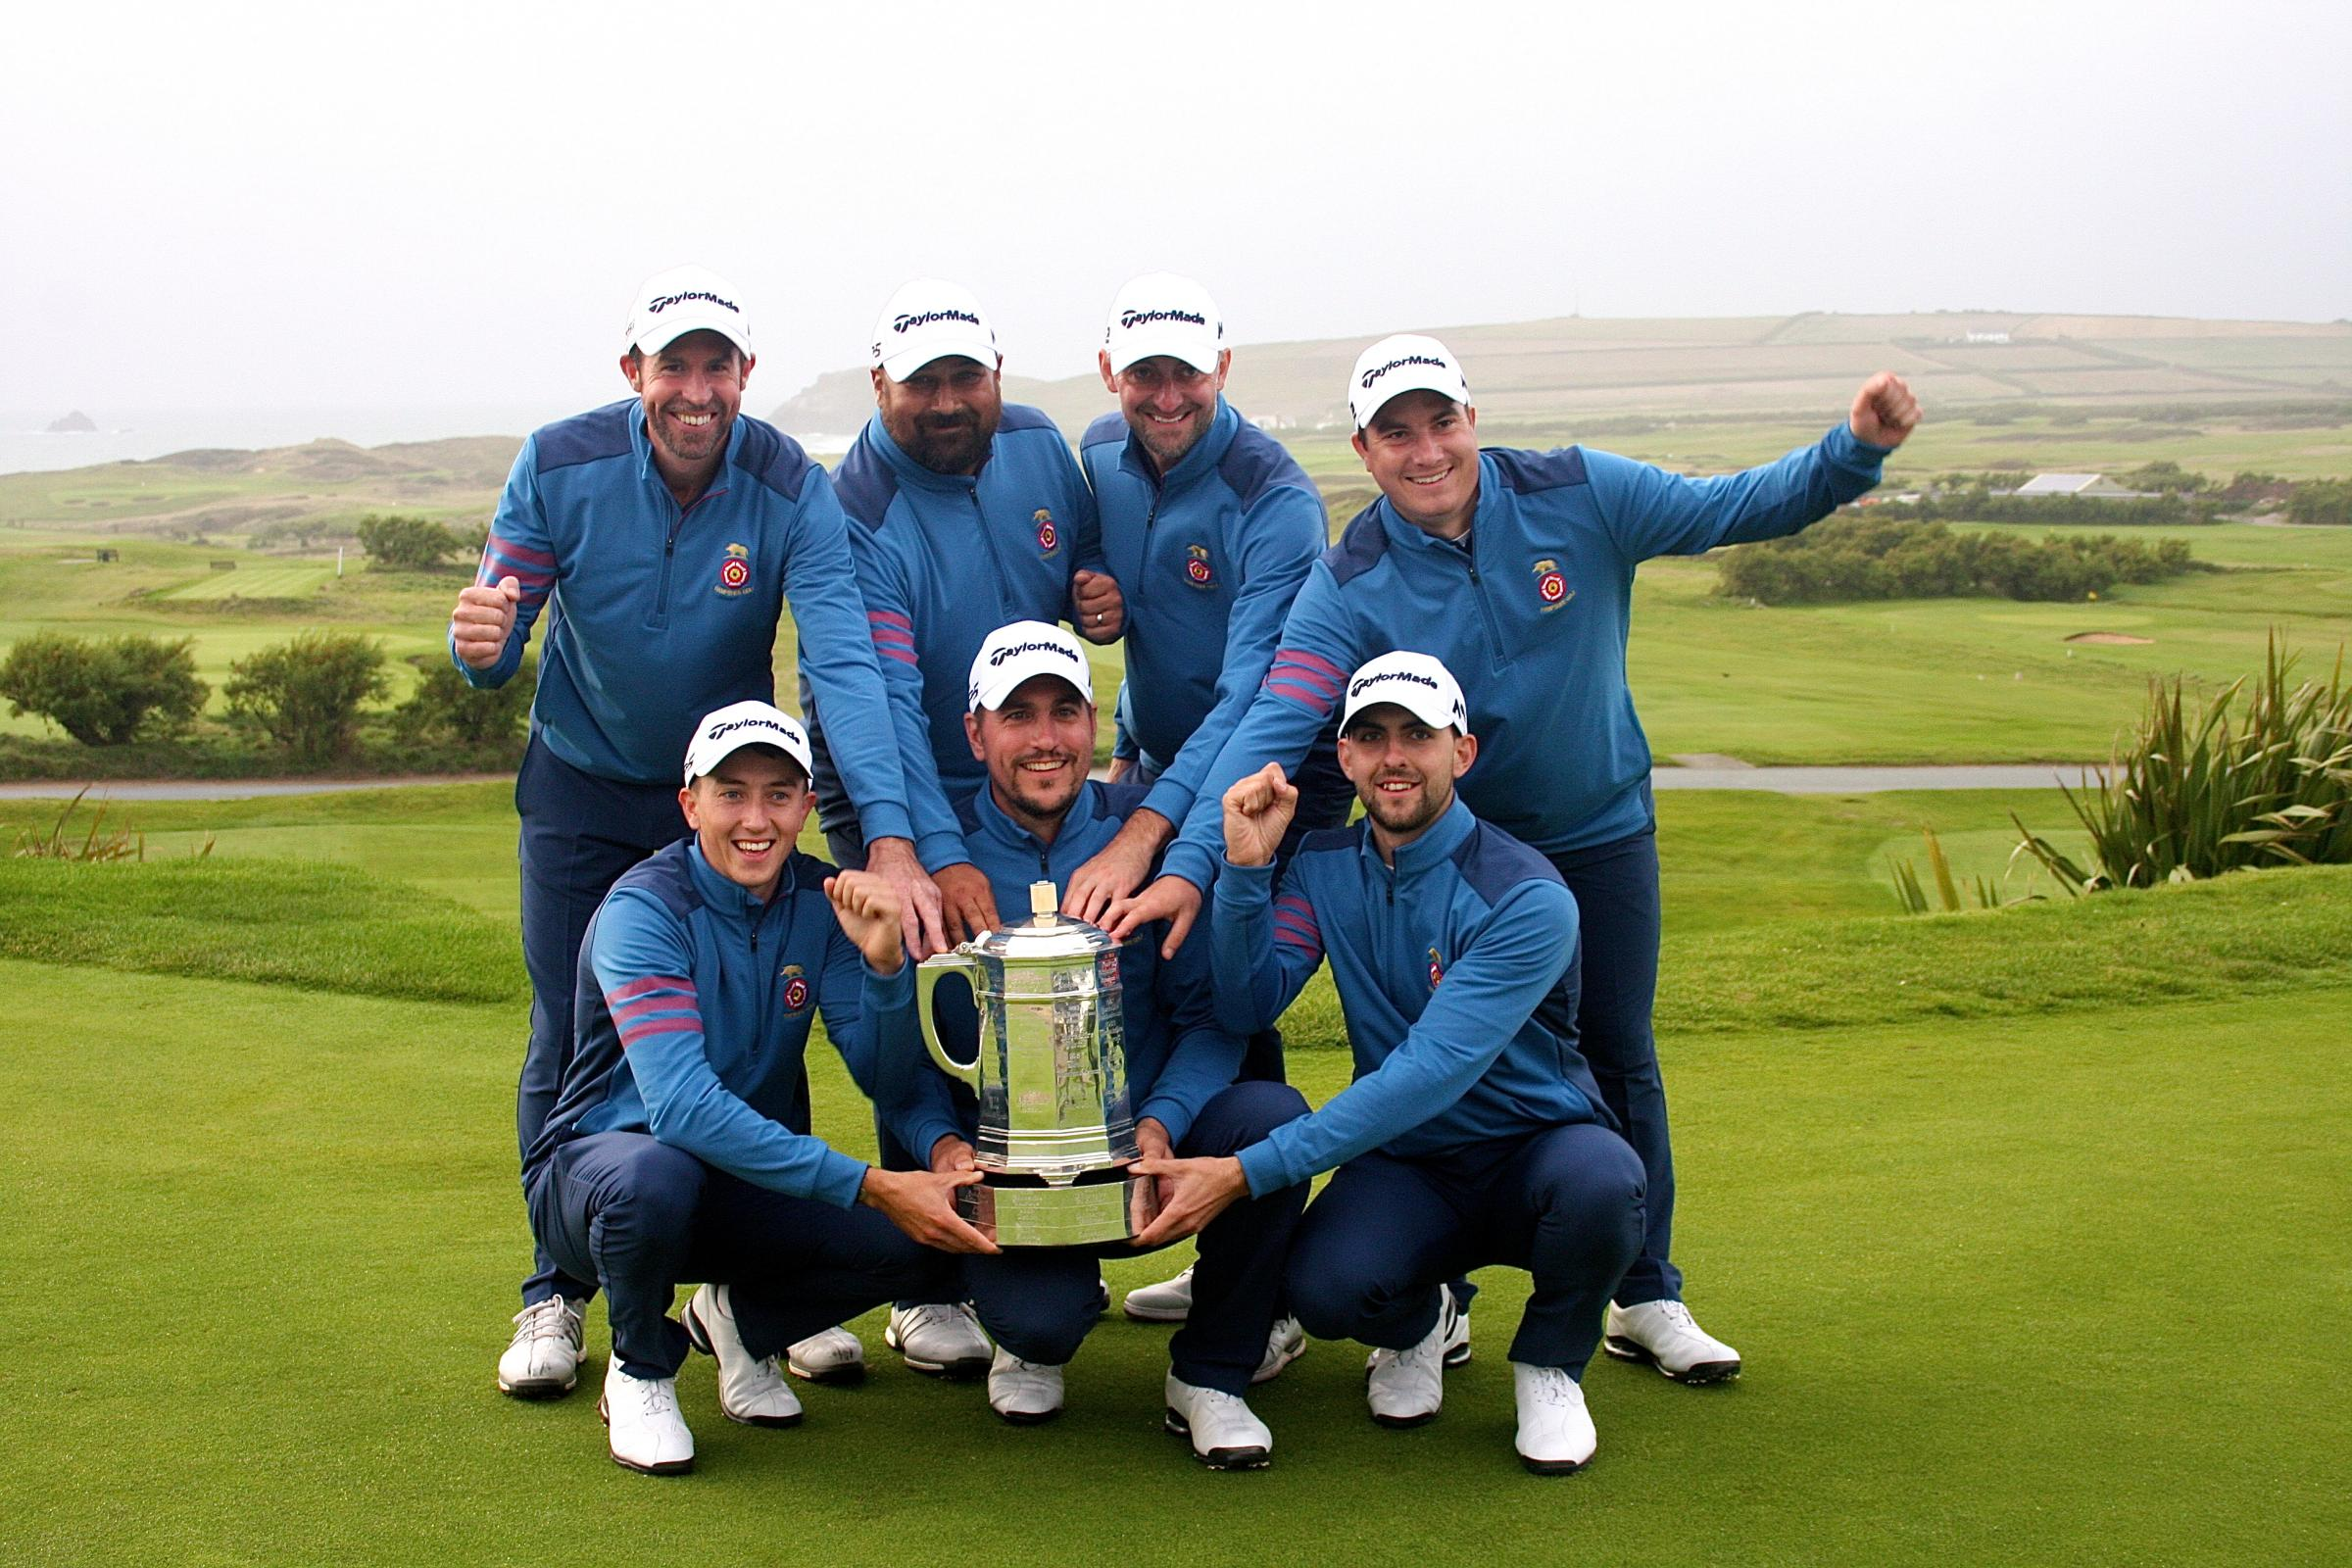 Hampshire's winning team (back l-r): Matt Wilcox, Colin Roope, Mark Burgess and Tom Robson. Front row: Billy McKenzie, Martin Young and Ryan Harmer. (Leaderboard Photography)